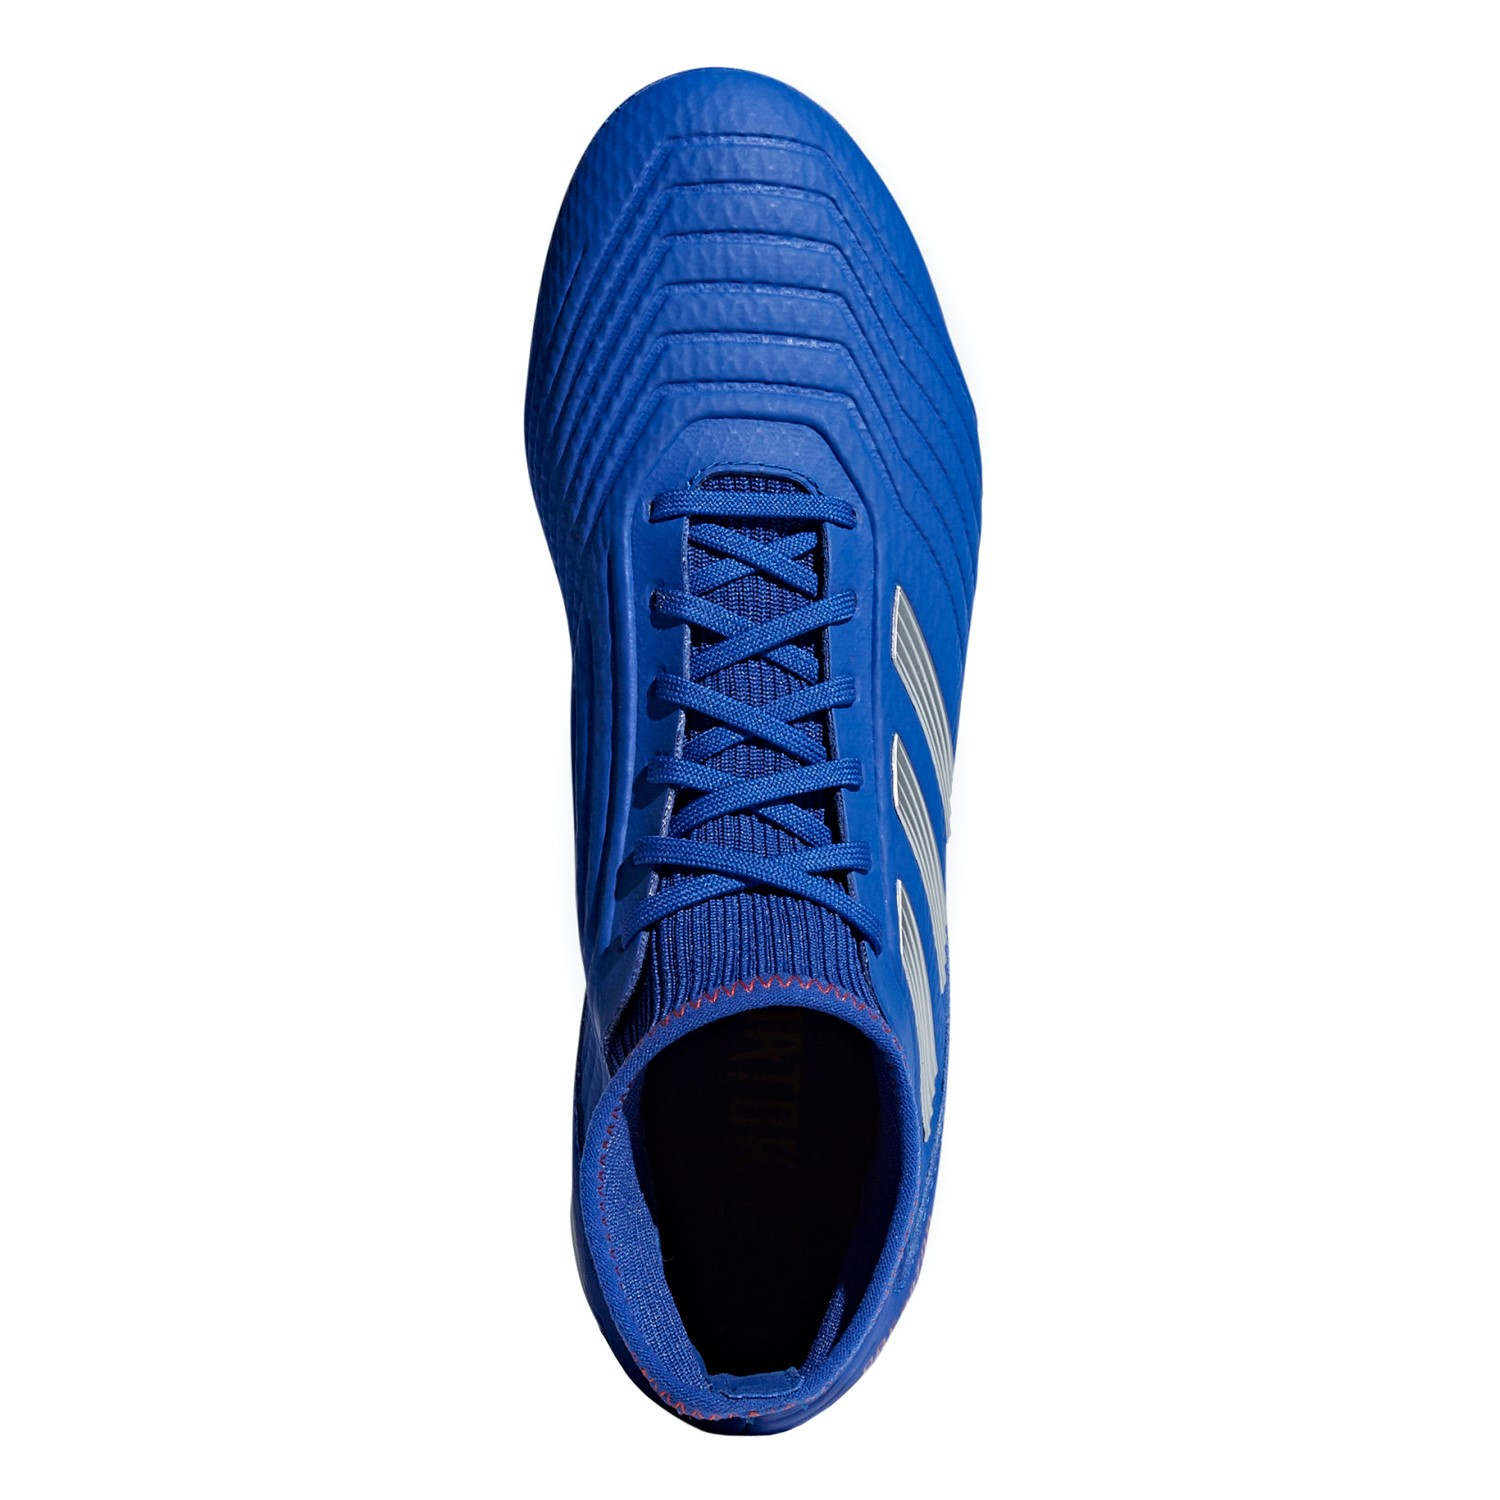 6669823d7b4 Adidas Predator 19.3 Firm Ground - Mens Football Boots - Bold Blue Silver  Active